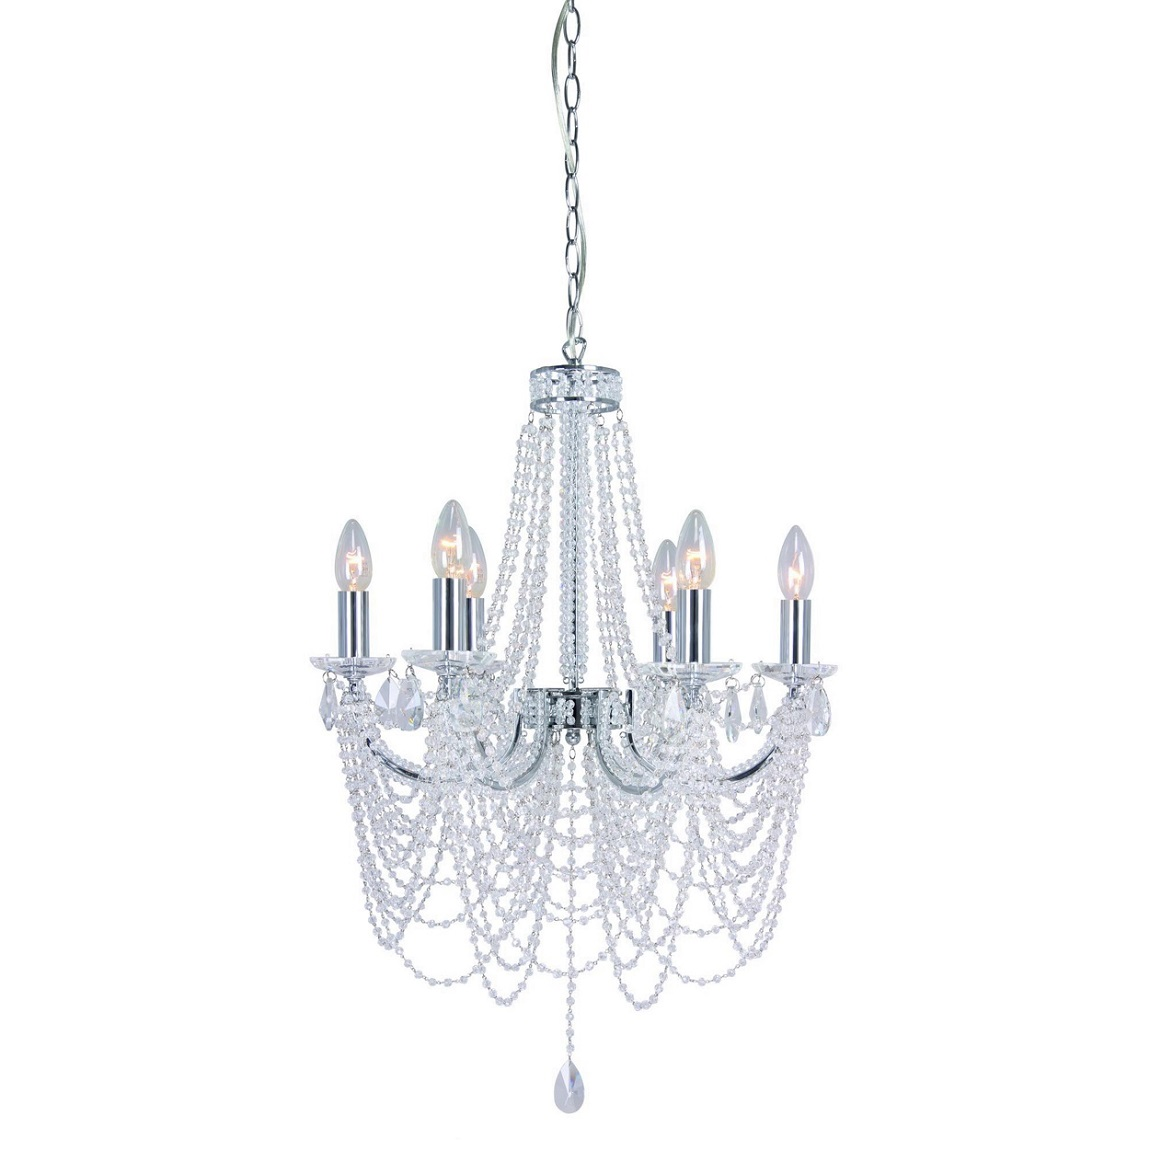 Debenhams Home Collection Evelyn Chandelier Ceiling Light